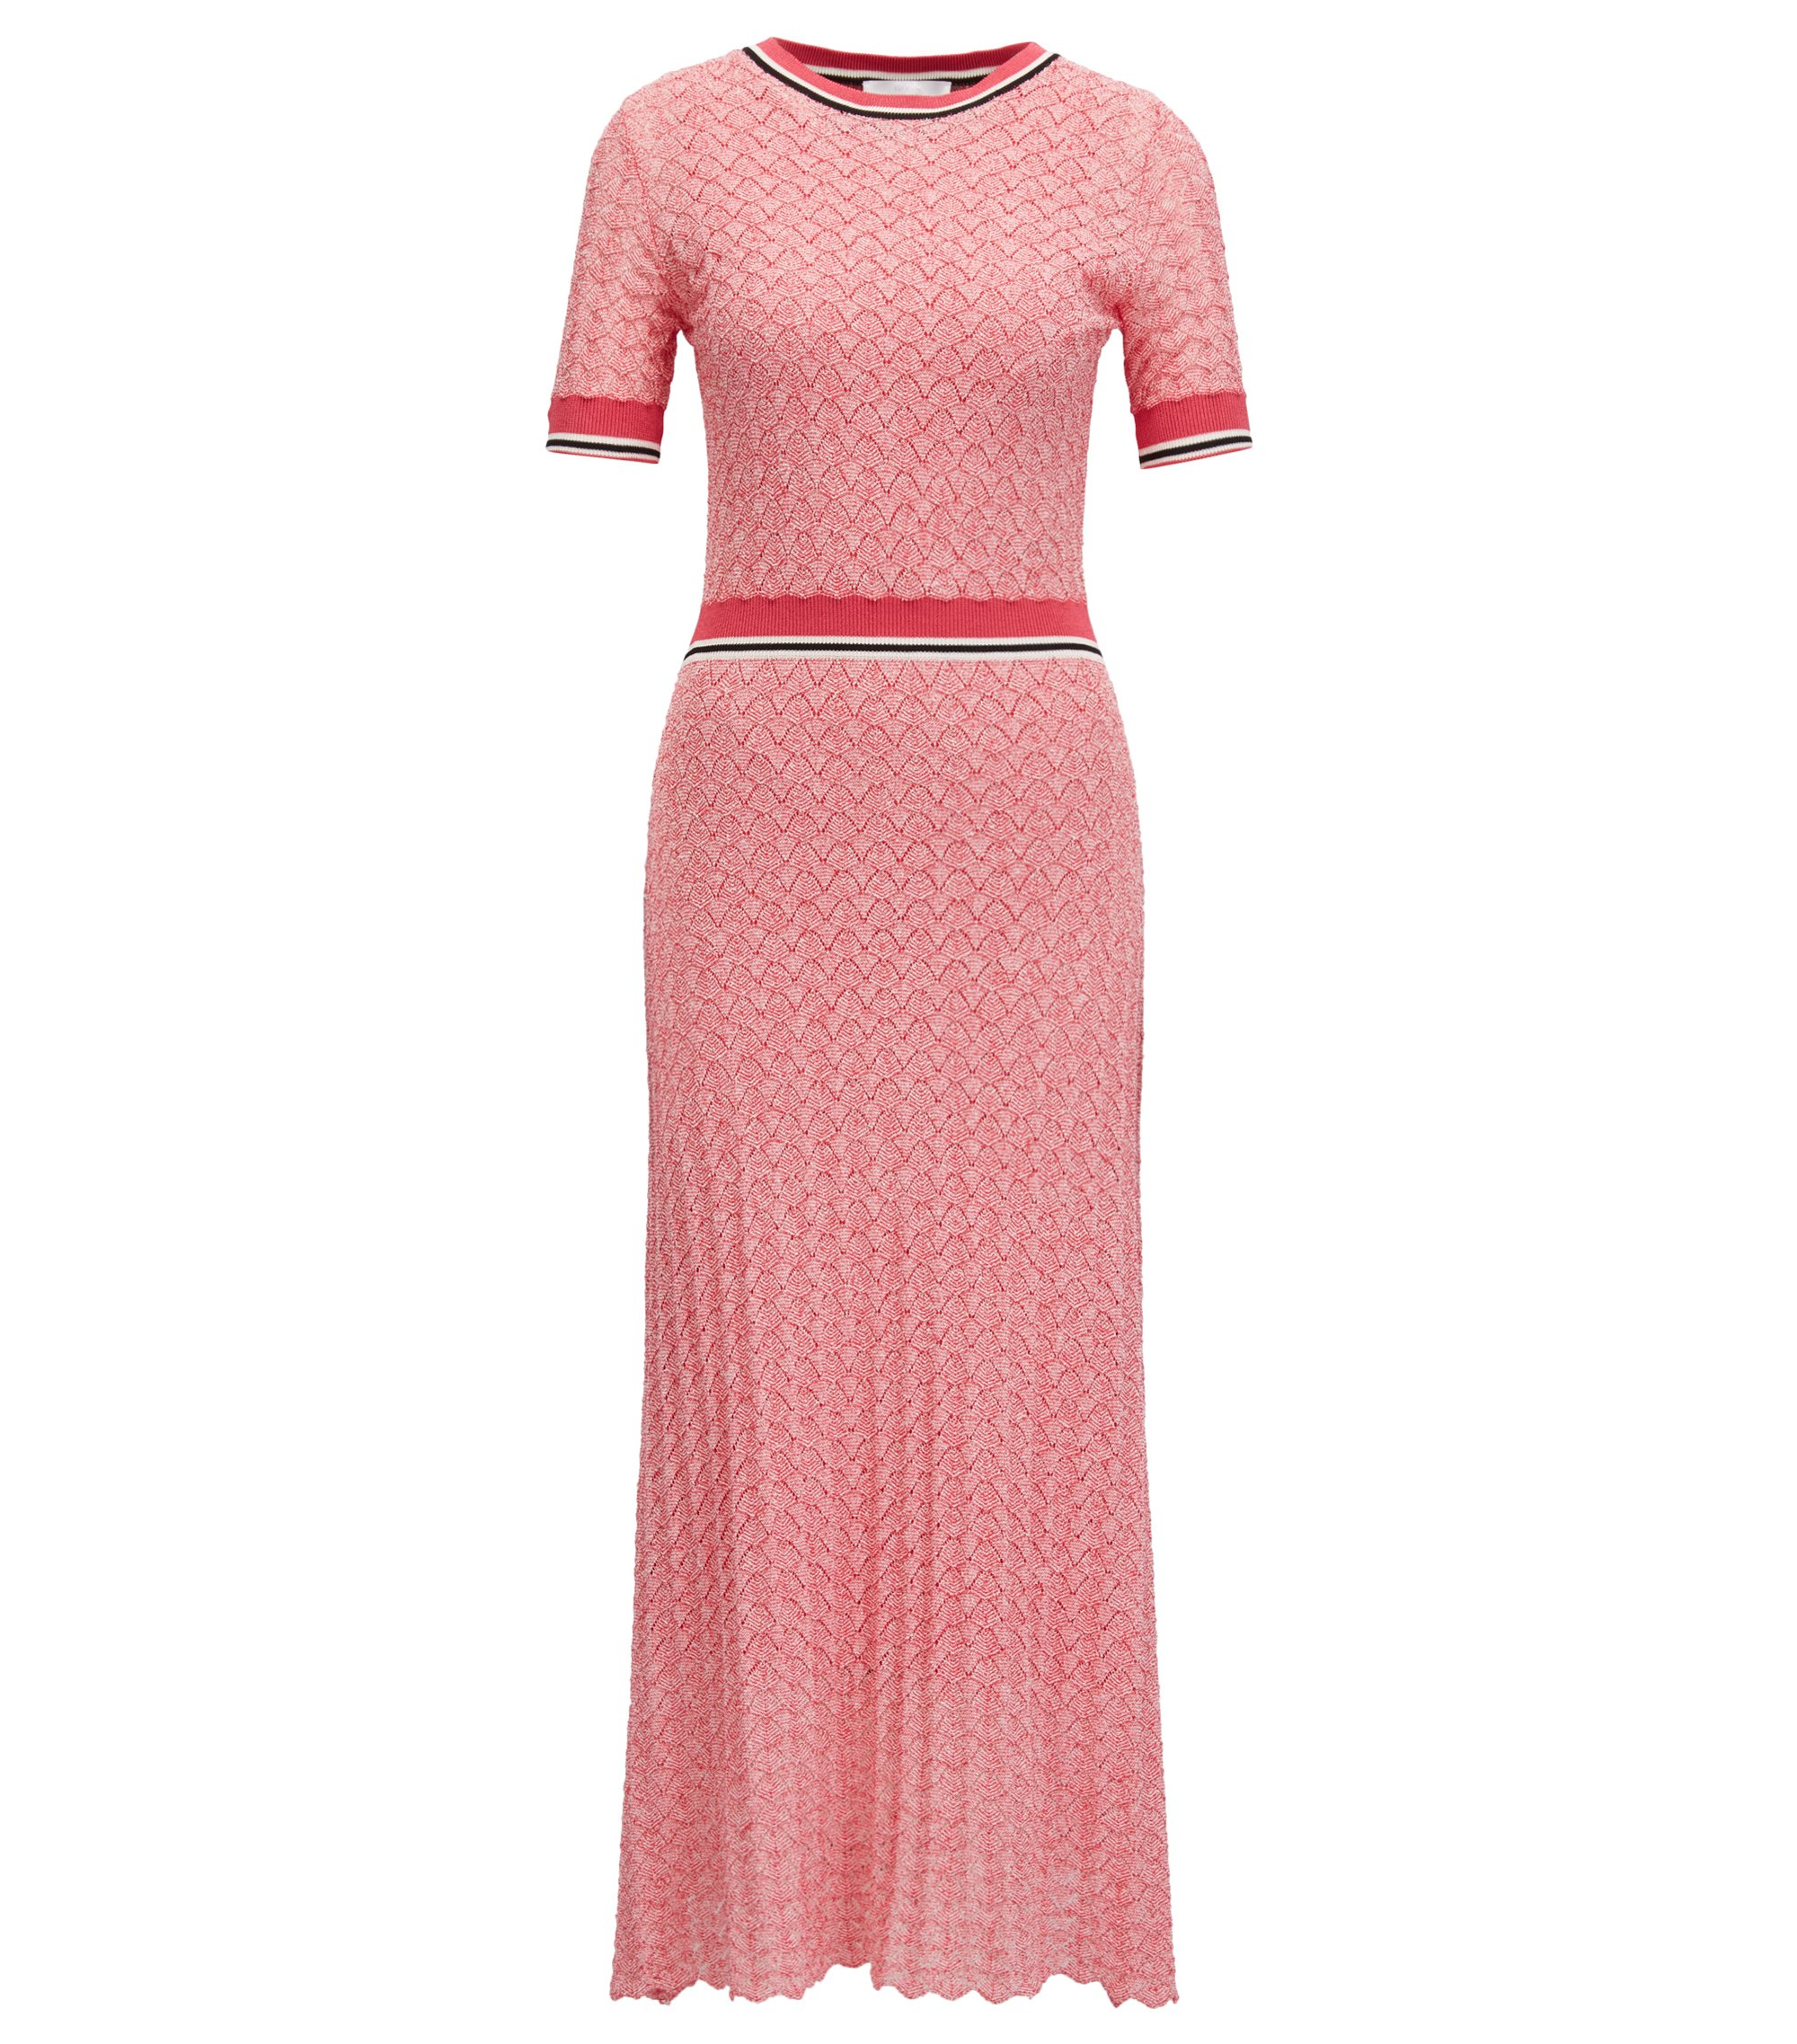 Bouclé dress with A-line skirt, Patterned